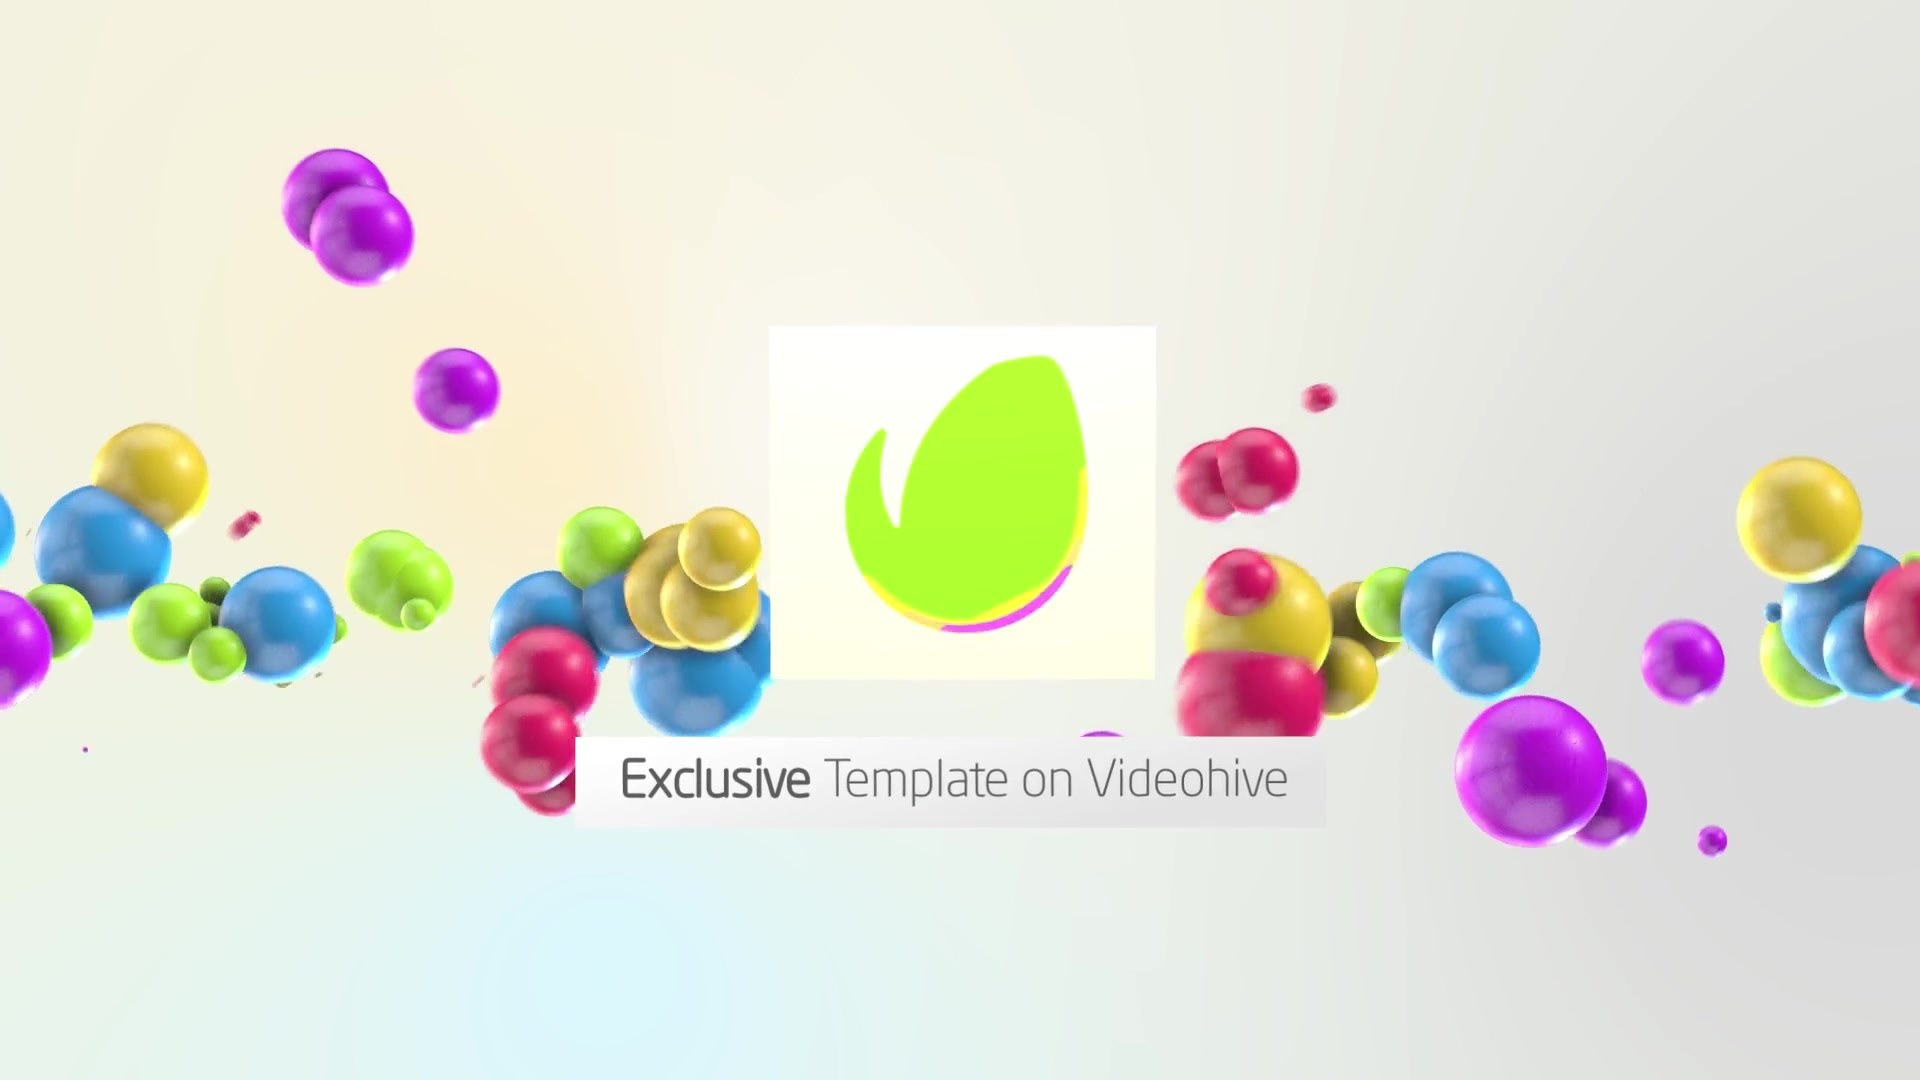 Colorful 3D Balls // Kids logo - Download Videohive 19882847